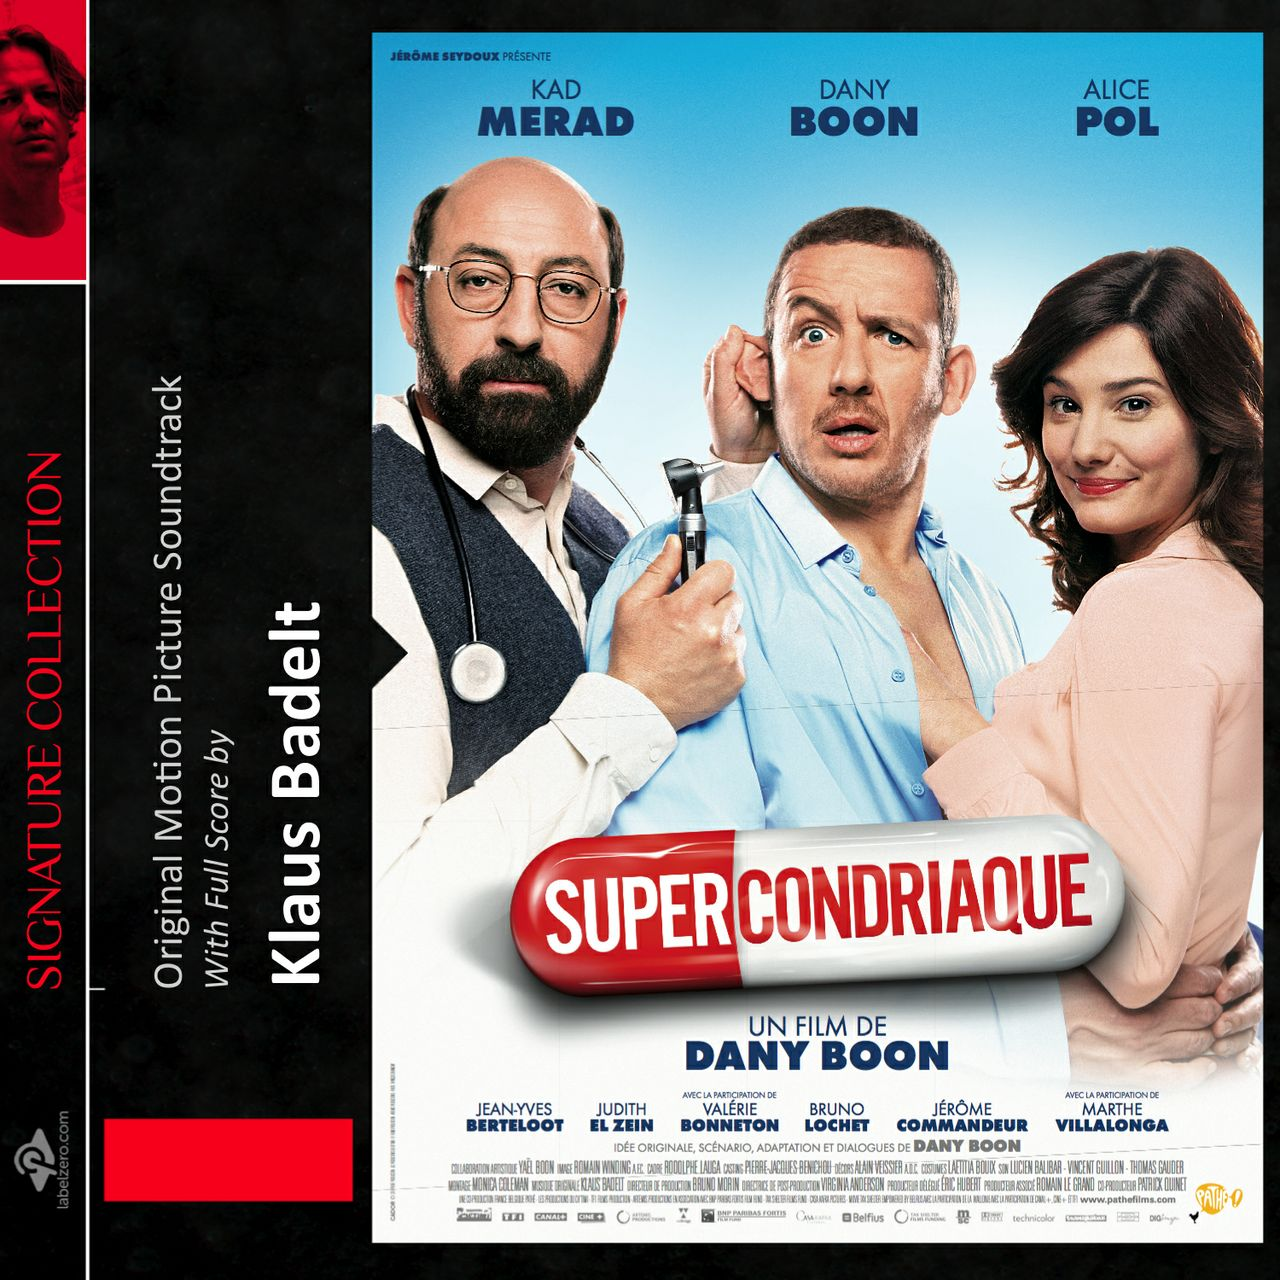 Supercondriaque (Original Score) - Conductor Score